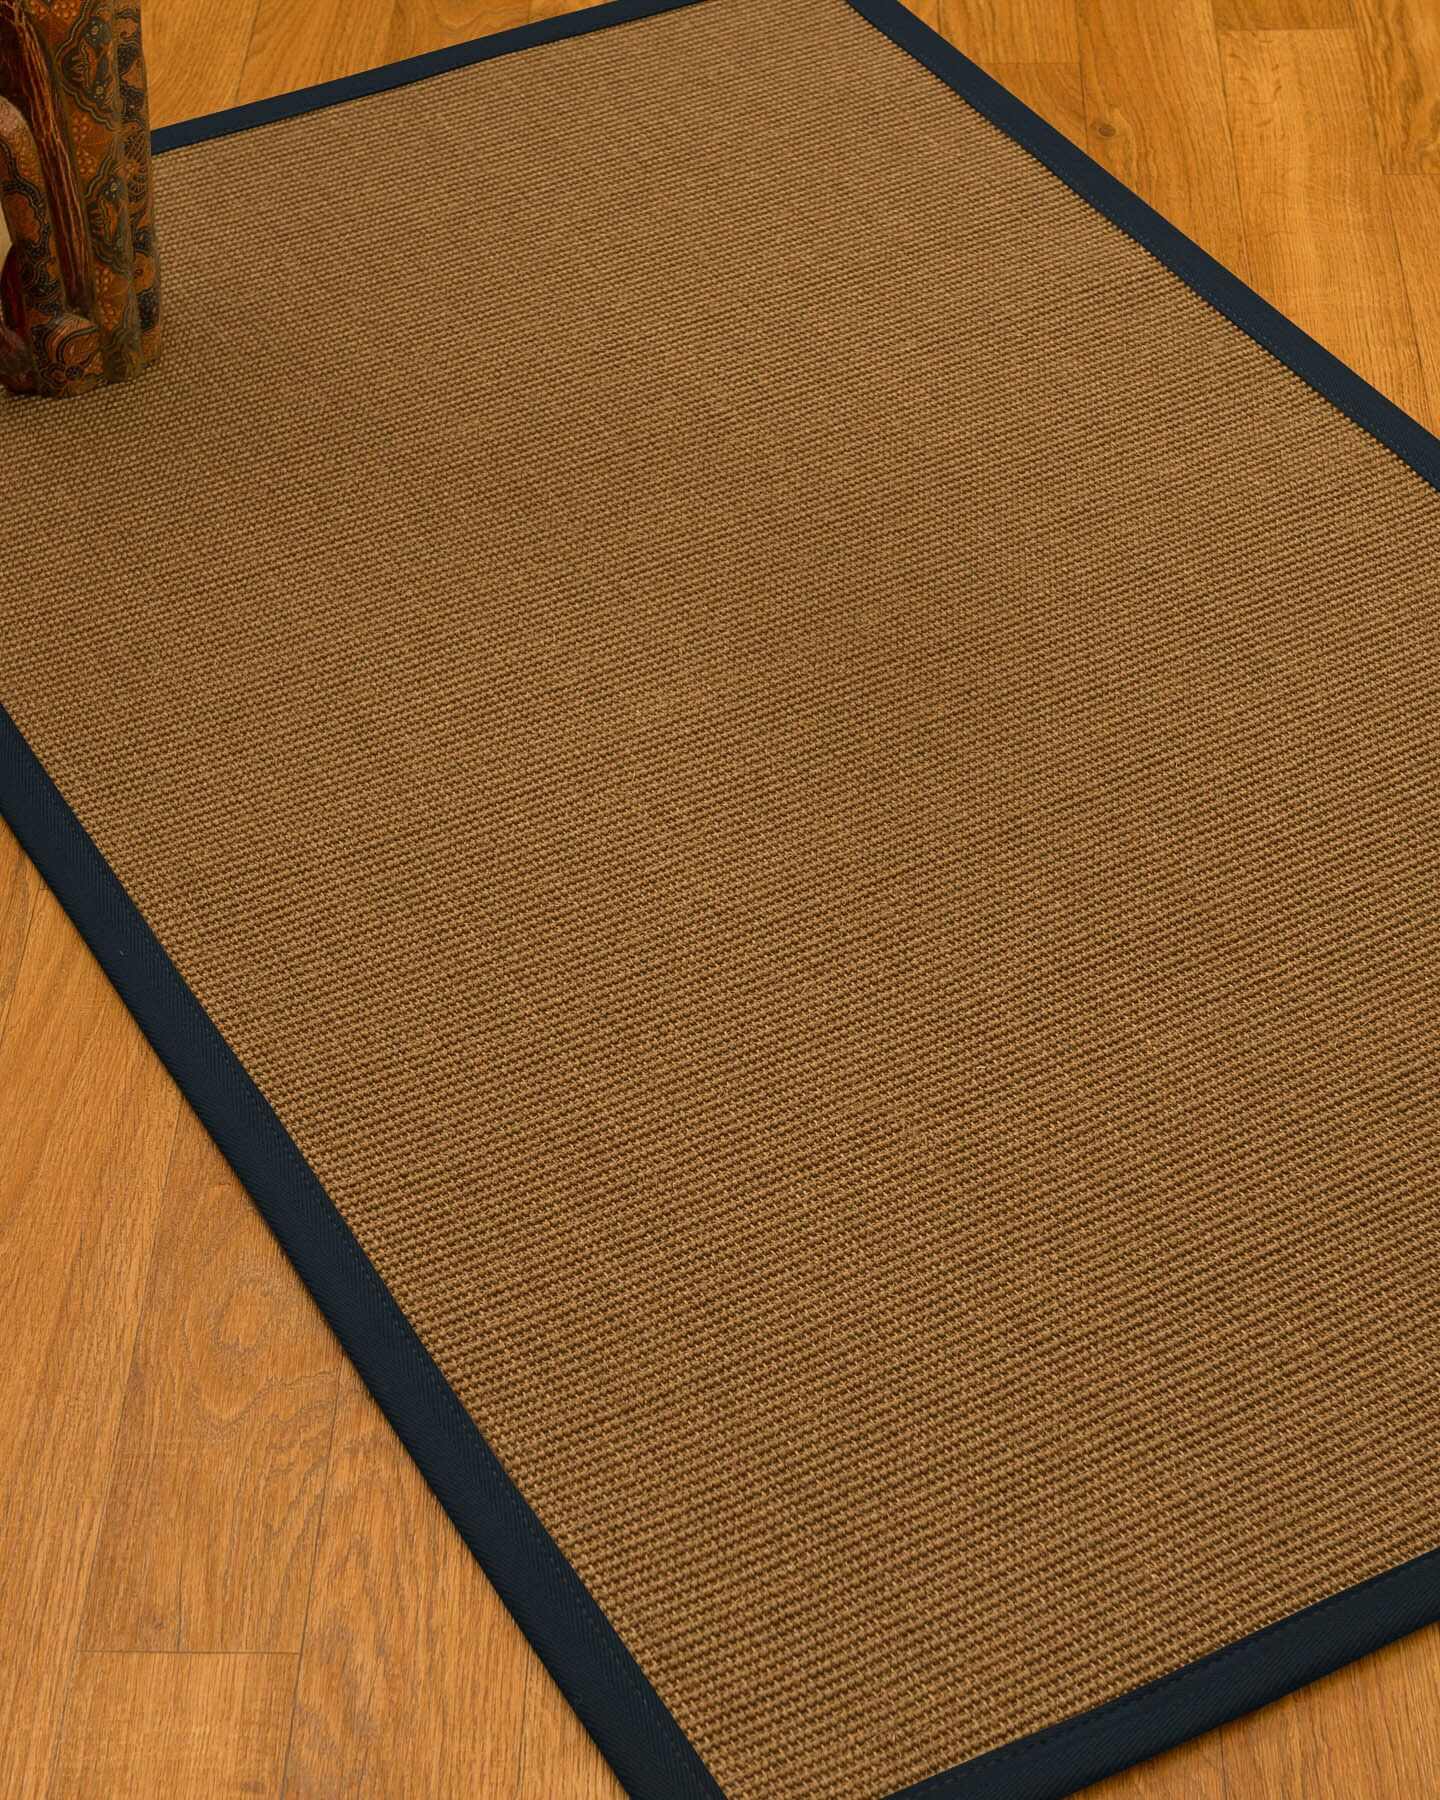 Huntwood Border Hand-Woven Brown/Midnight Blue Area Rug Rug Pad Included: No, Rug Size: Rectangle 3' x 5'